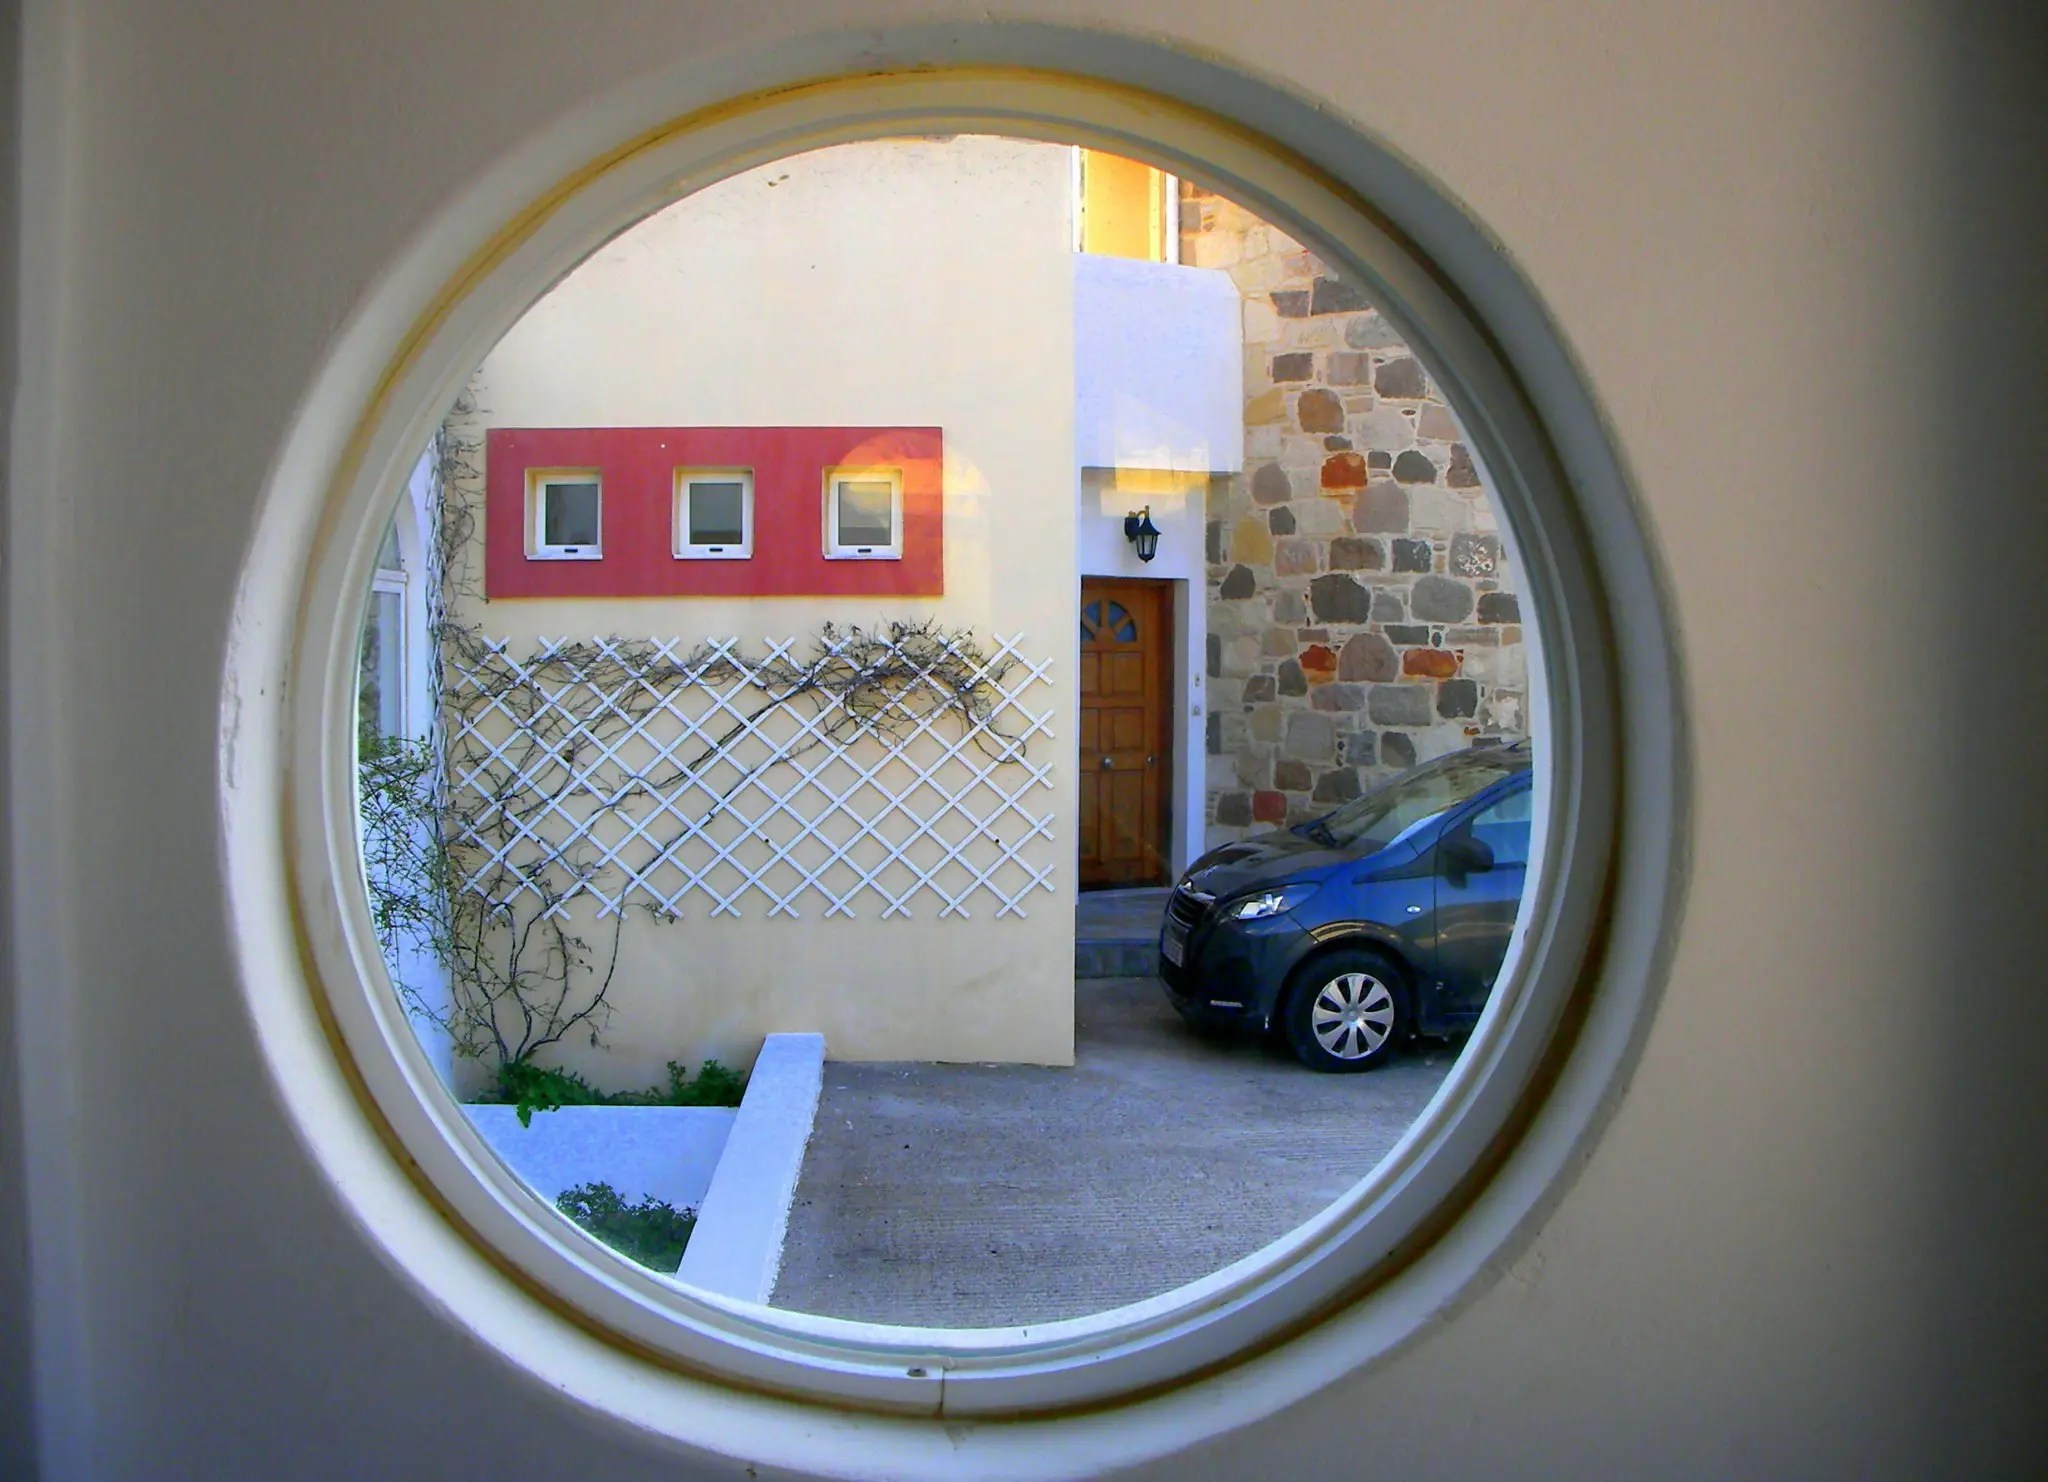 Let's look through the round window...!